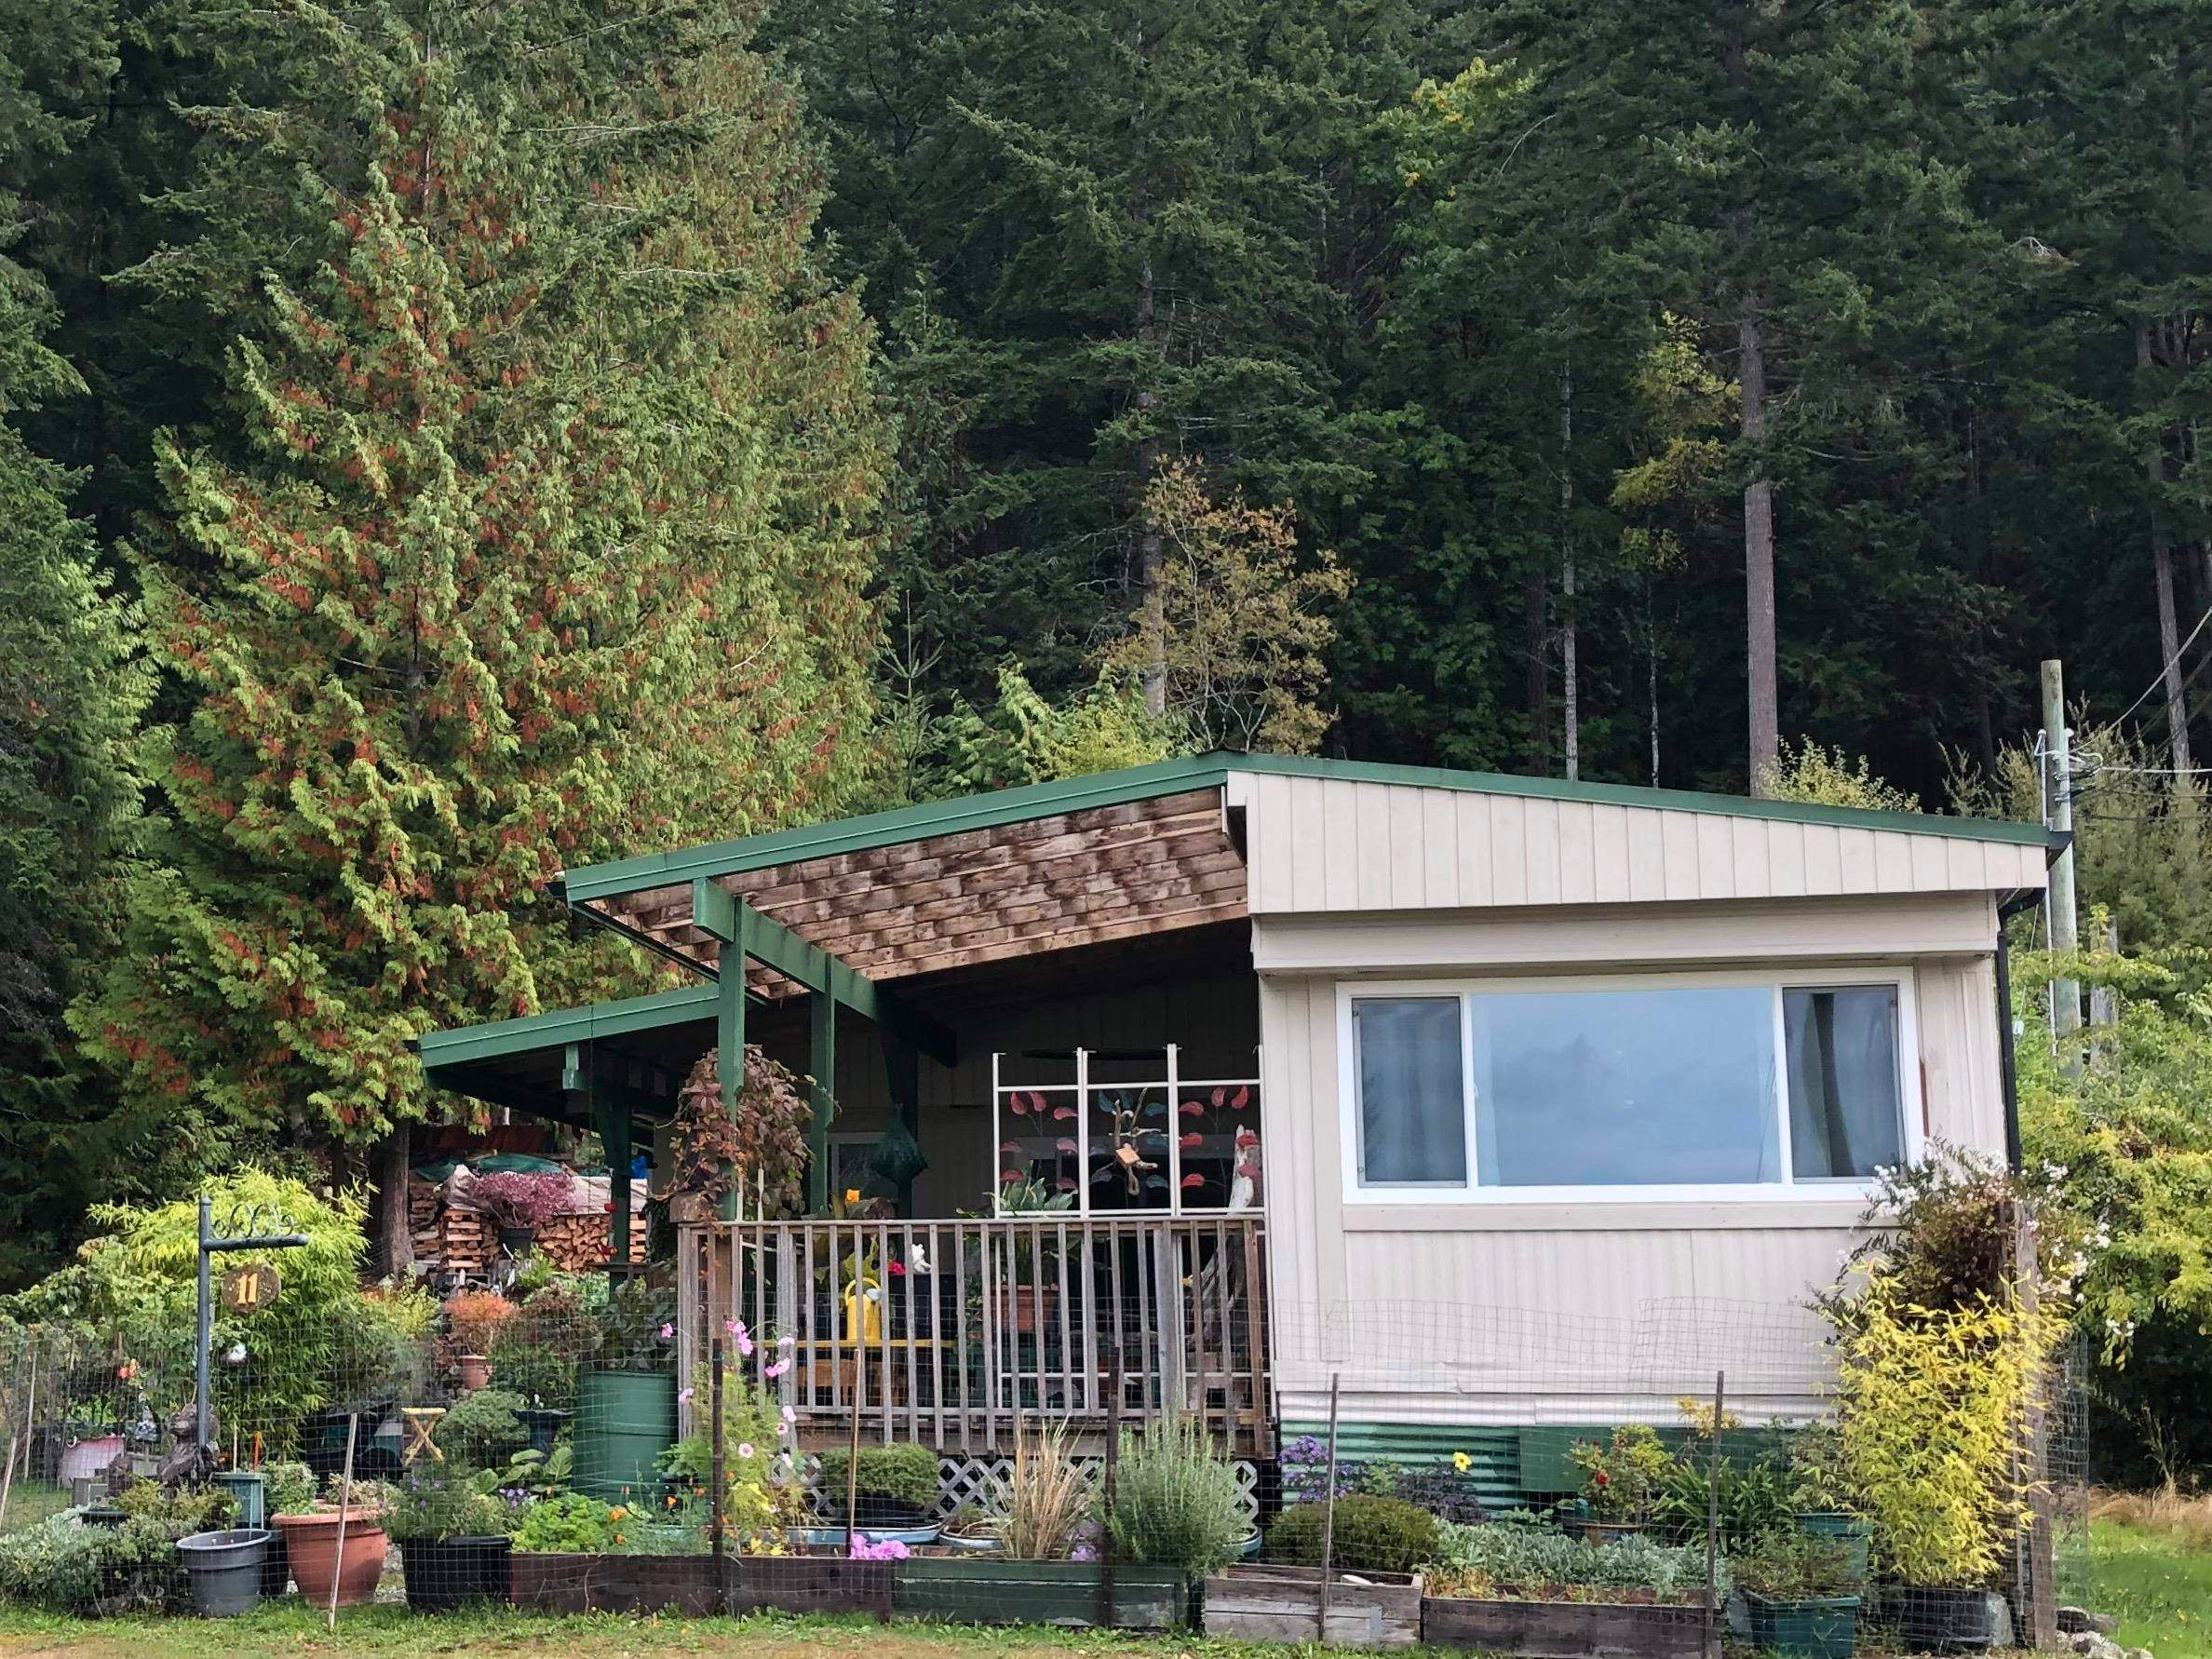 """Main Photo: 11 12248 SUNSHINE COAST Highway in Madeira Park: Pender Harbour Egmont Manufactured Home for sale in """"7 ISLES MOBILE HOME PARK"""" (Sunshine Coast)  : MLS®# R2621280"""